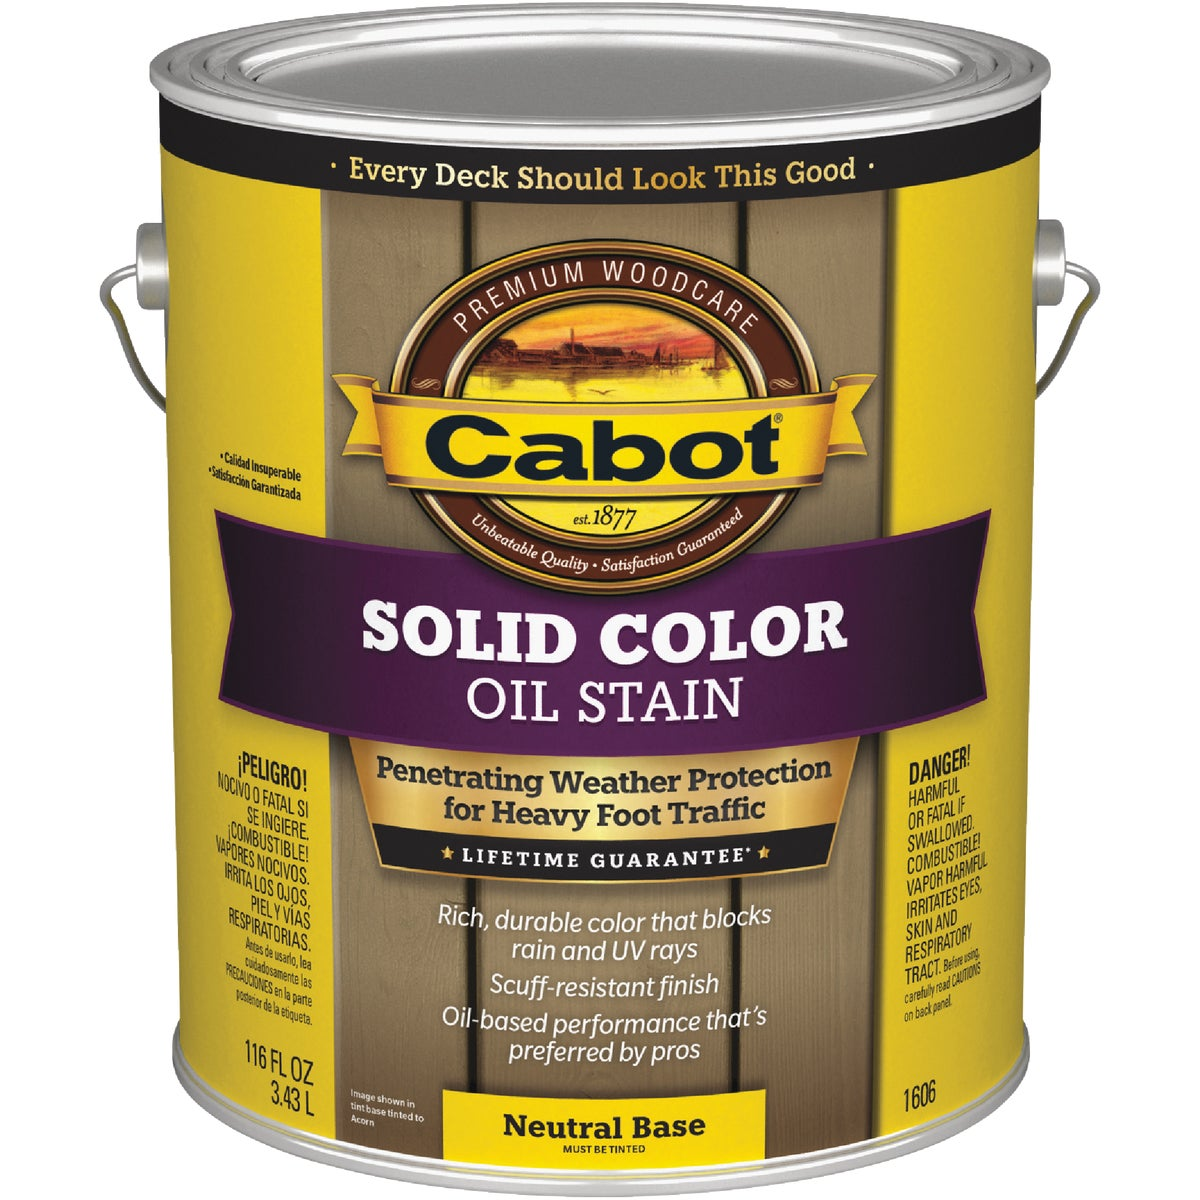 NEUT BS SOLID DECK STAIN - 140.0001606.007 by Valspar Corp